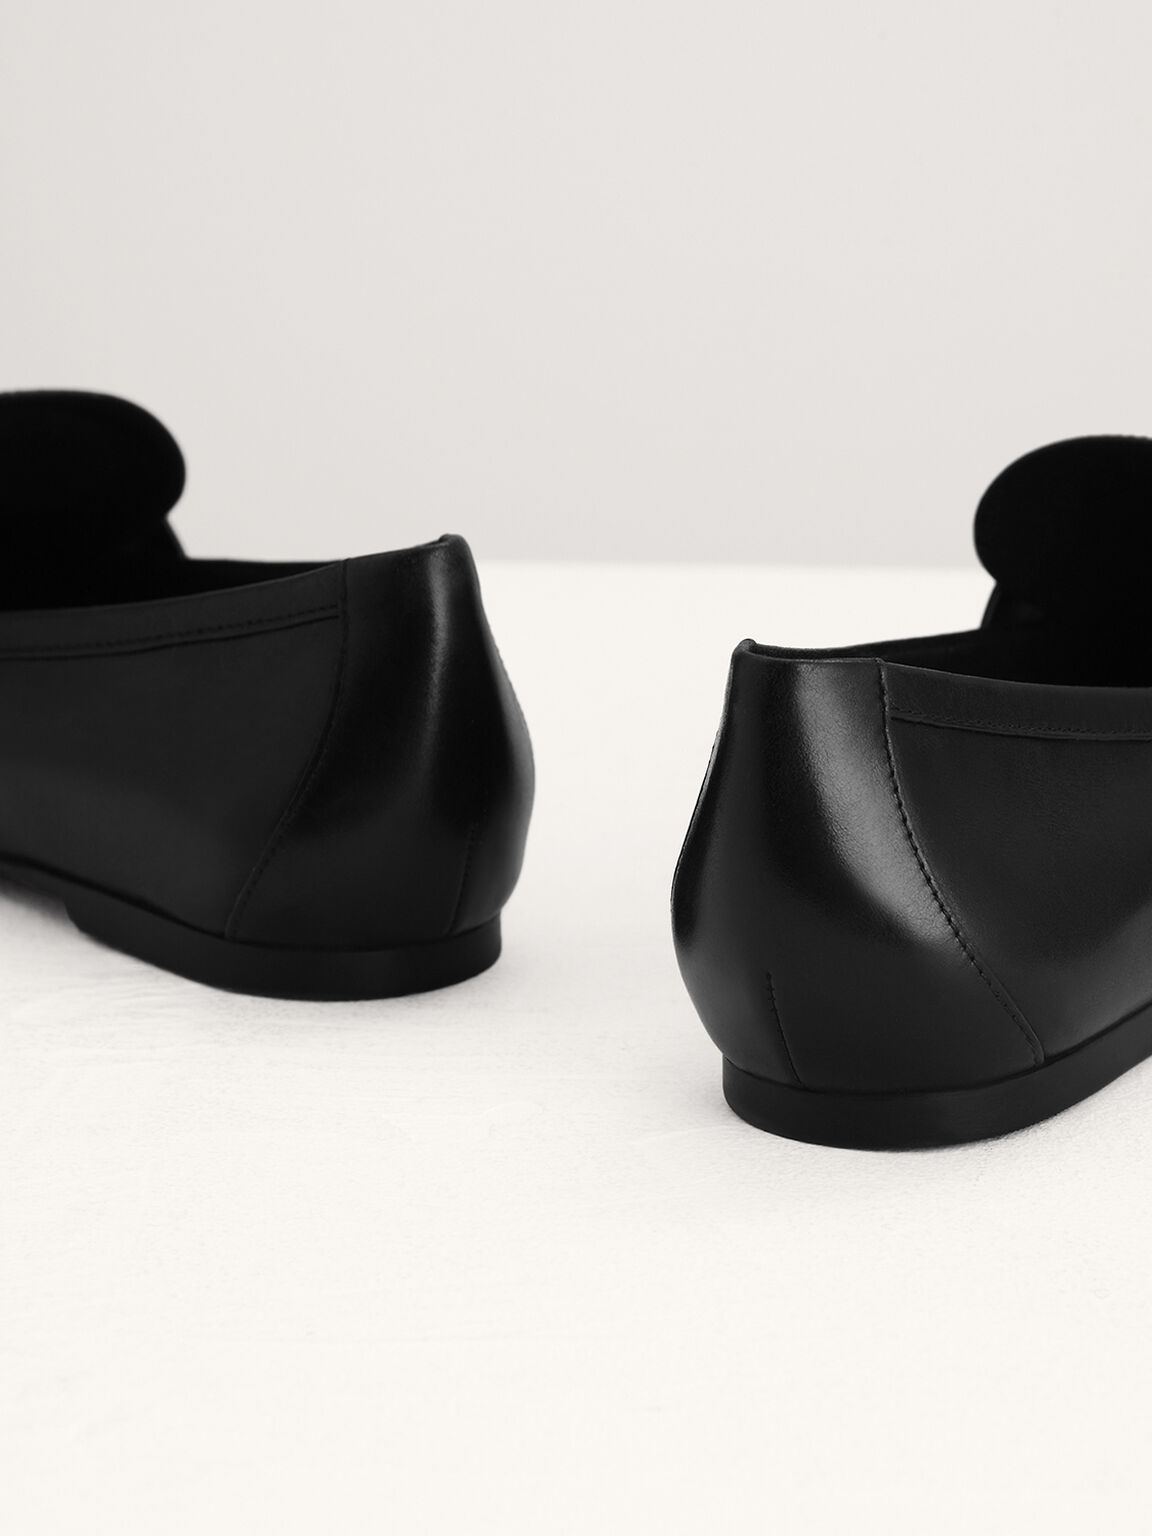 Buckle Leather Loafers, Black, hi-res